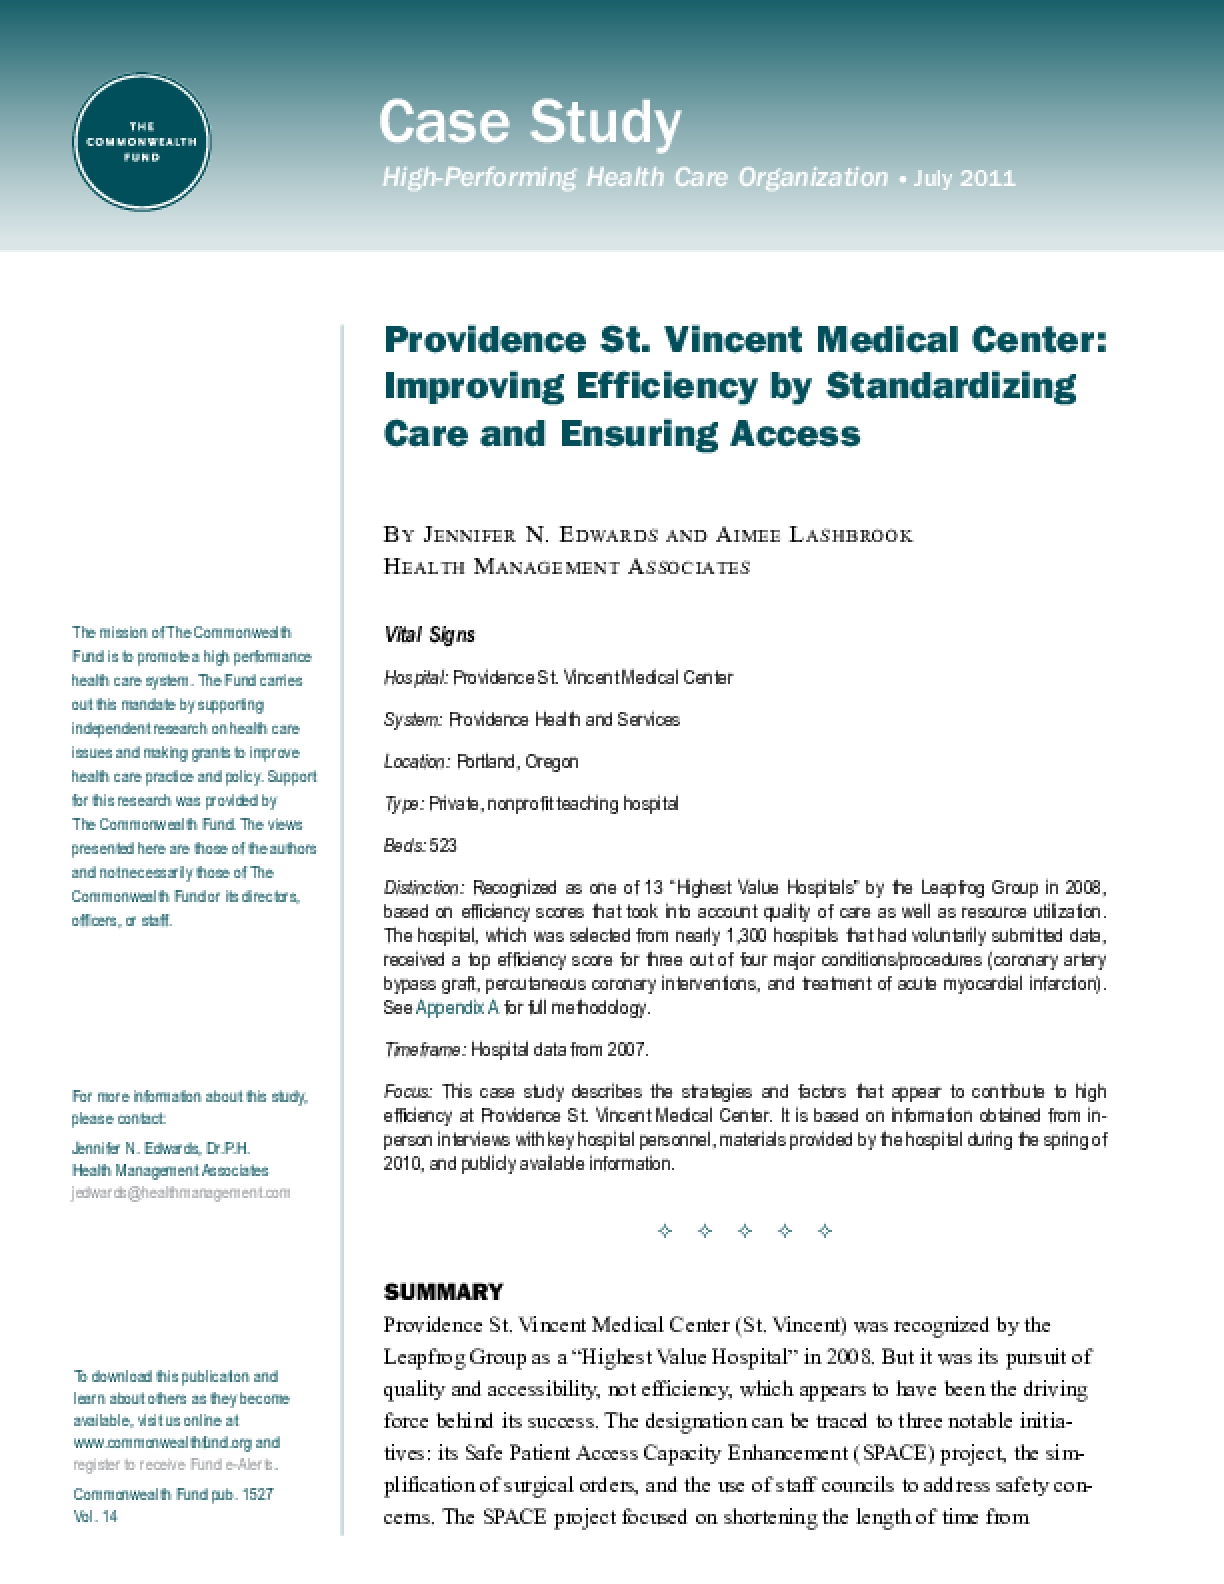 Providence St. Vincent Medical Center: Improving Efficiency by Standardizing Care and Ensuring Access